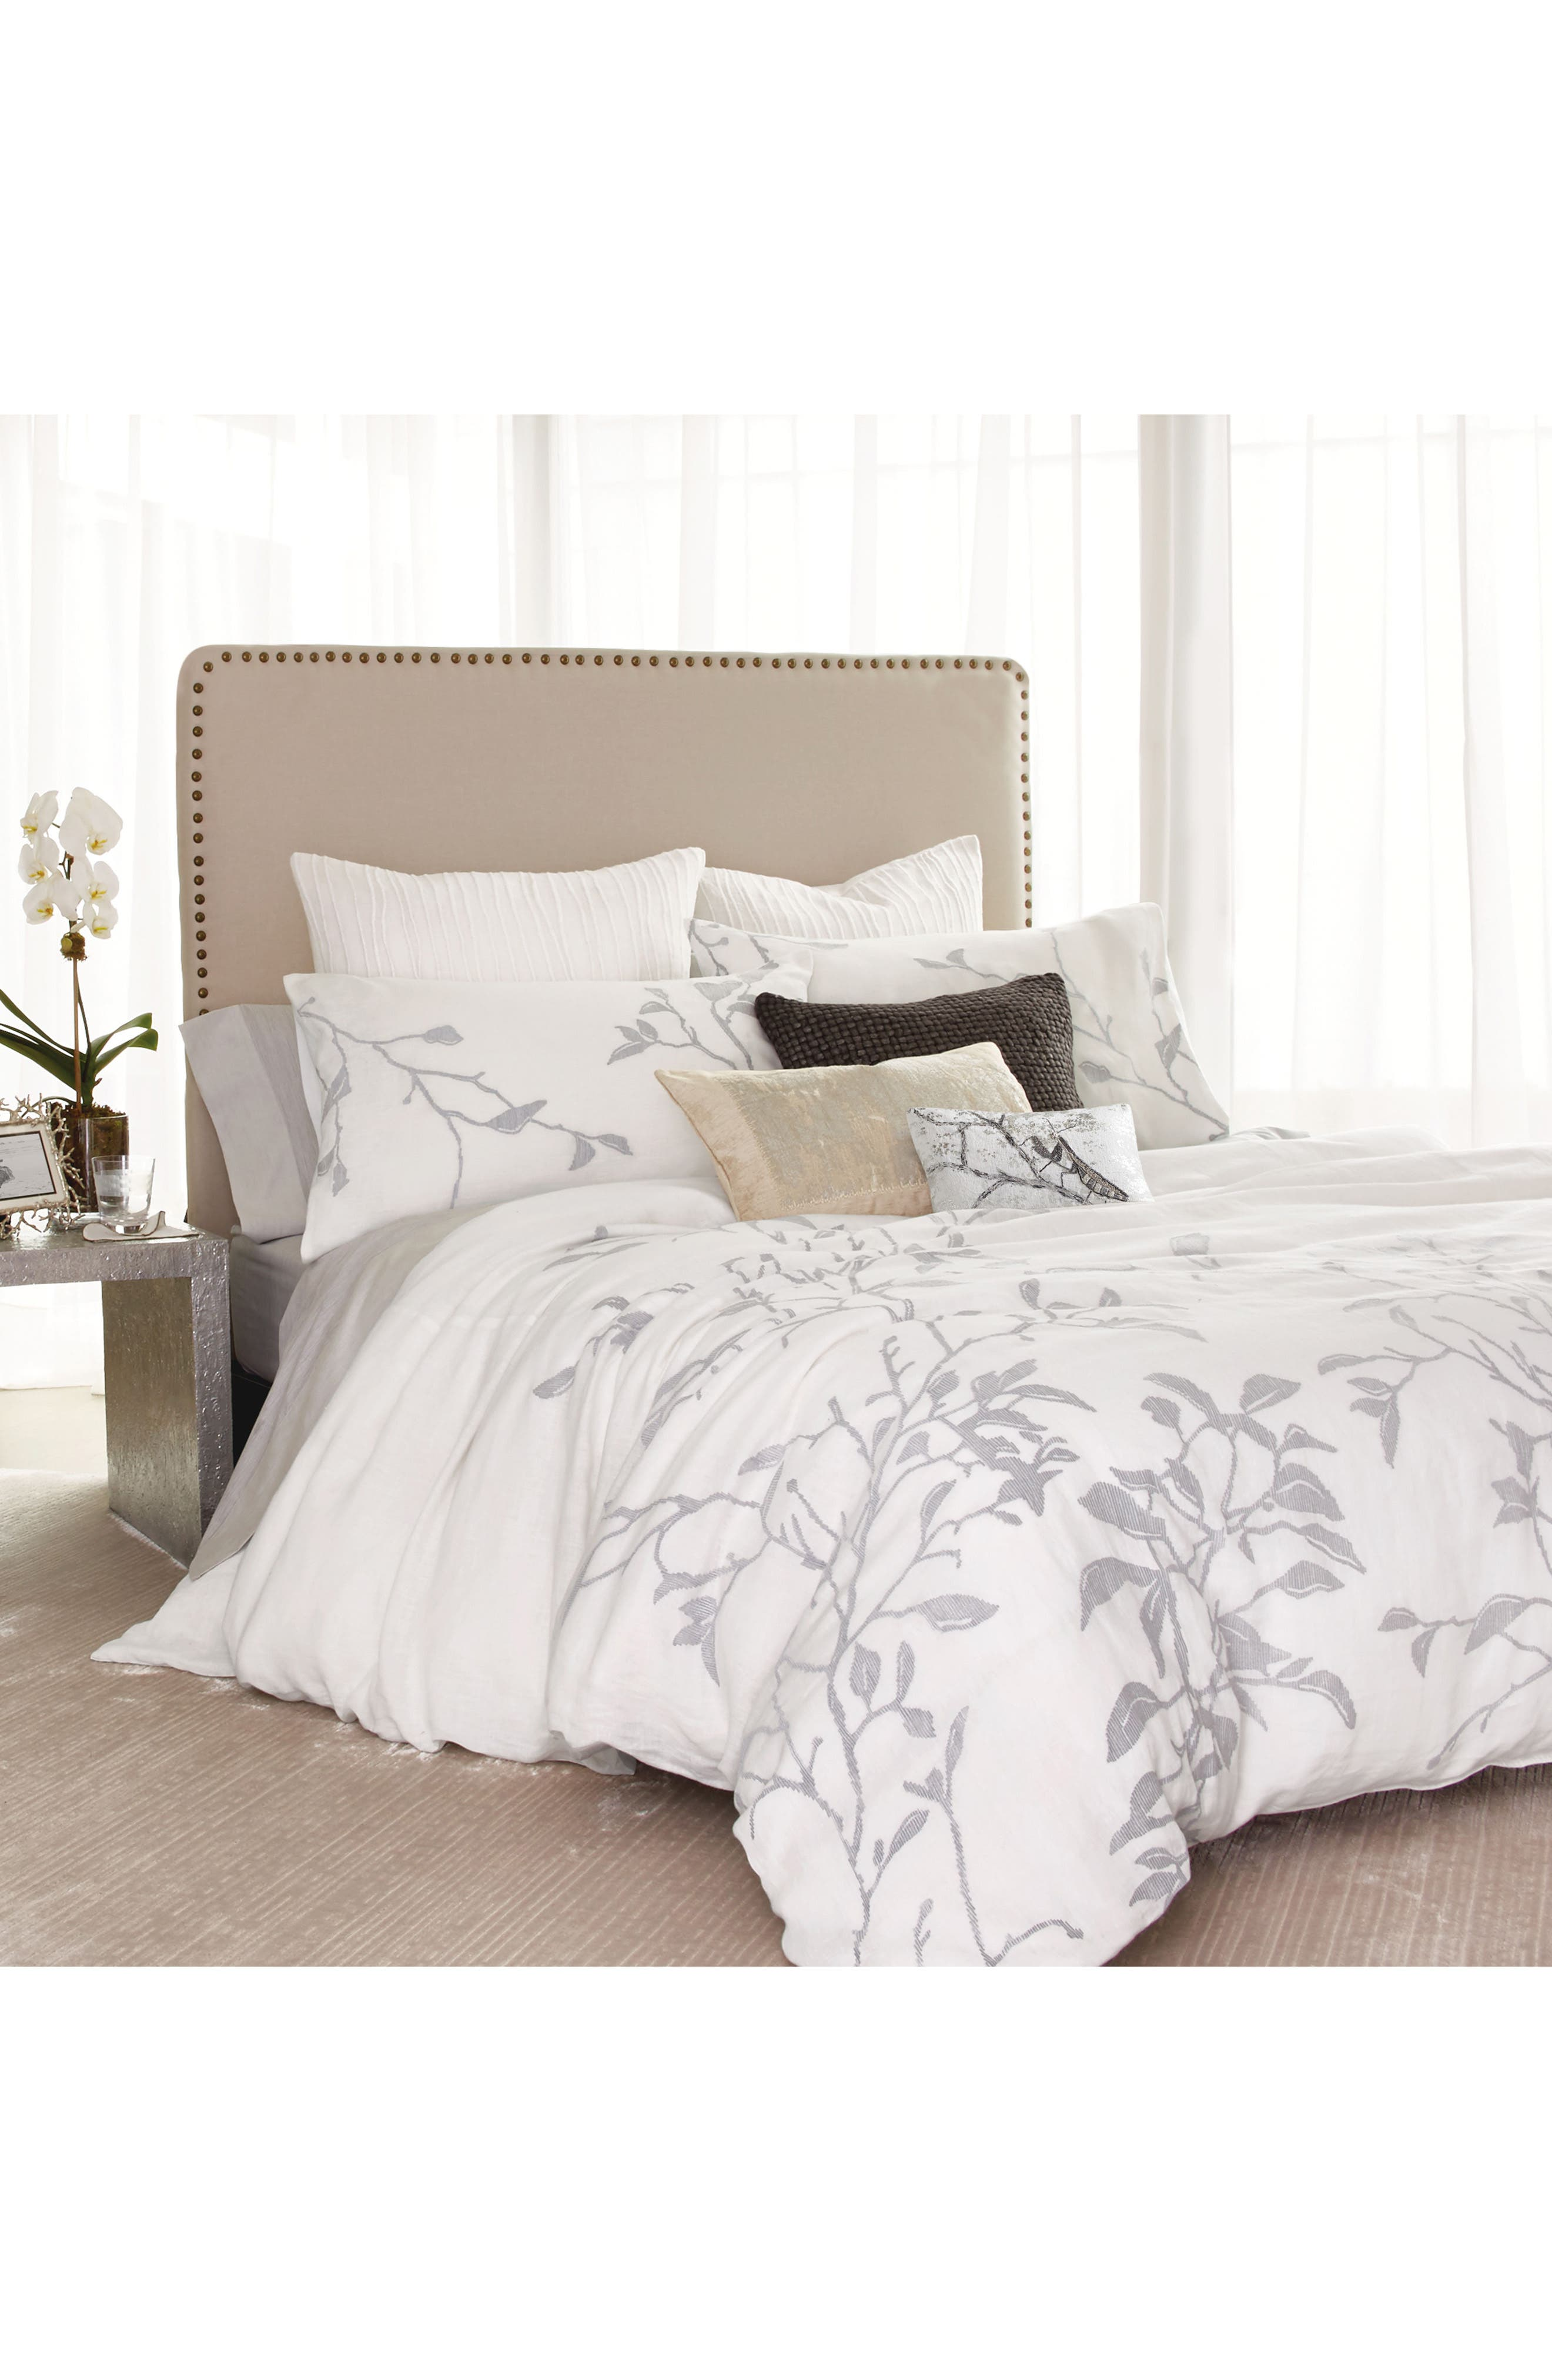 Branch Duvet Cover,                             Main thumbnail 1, color,